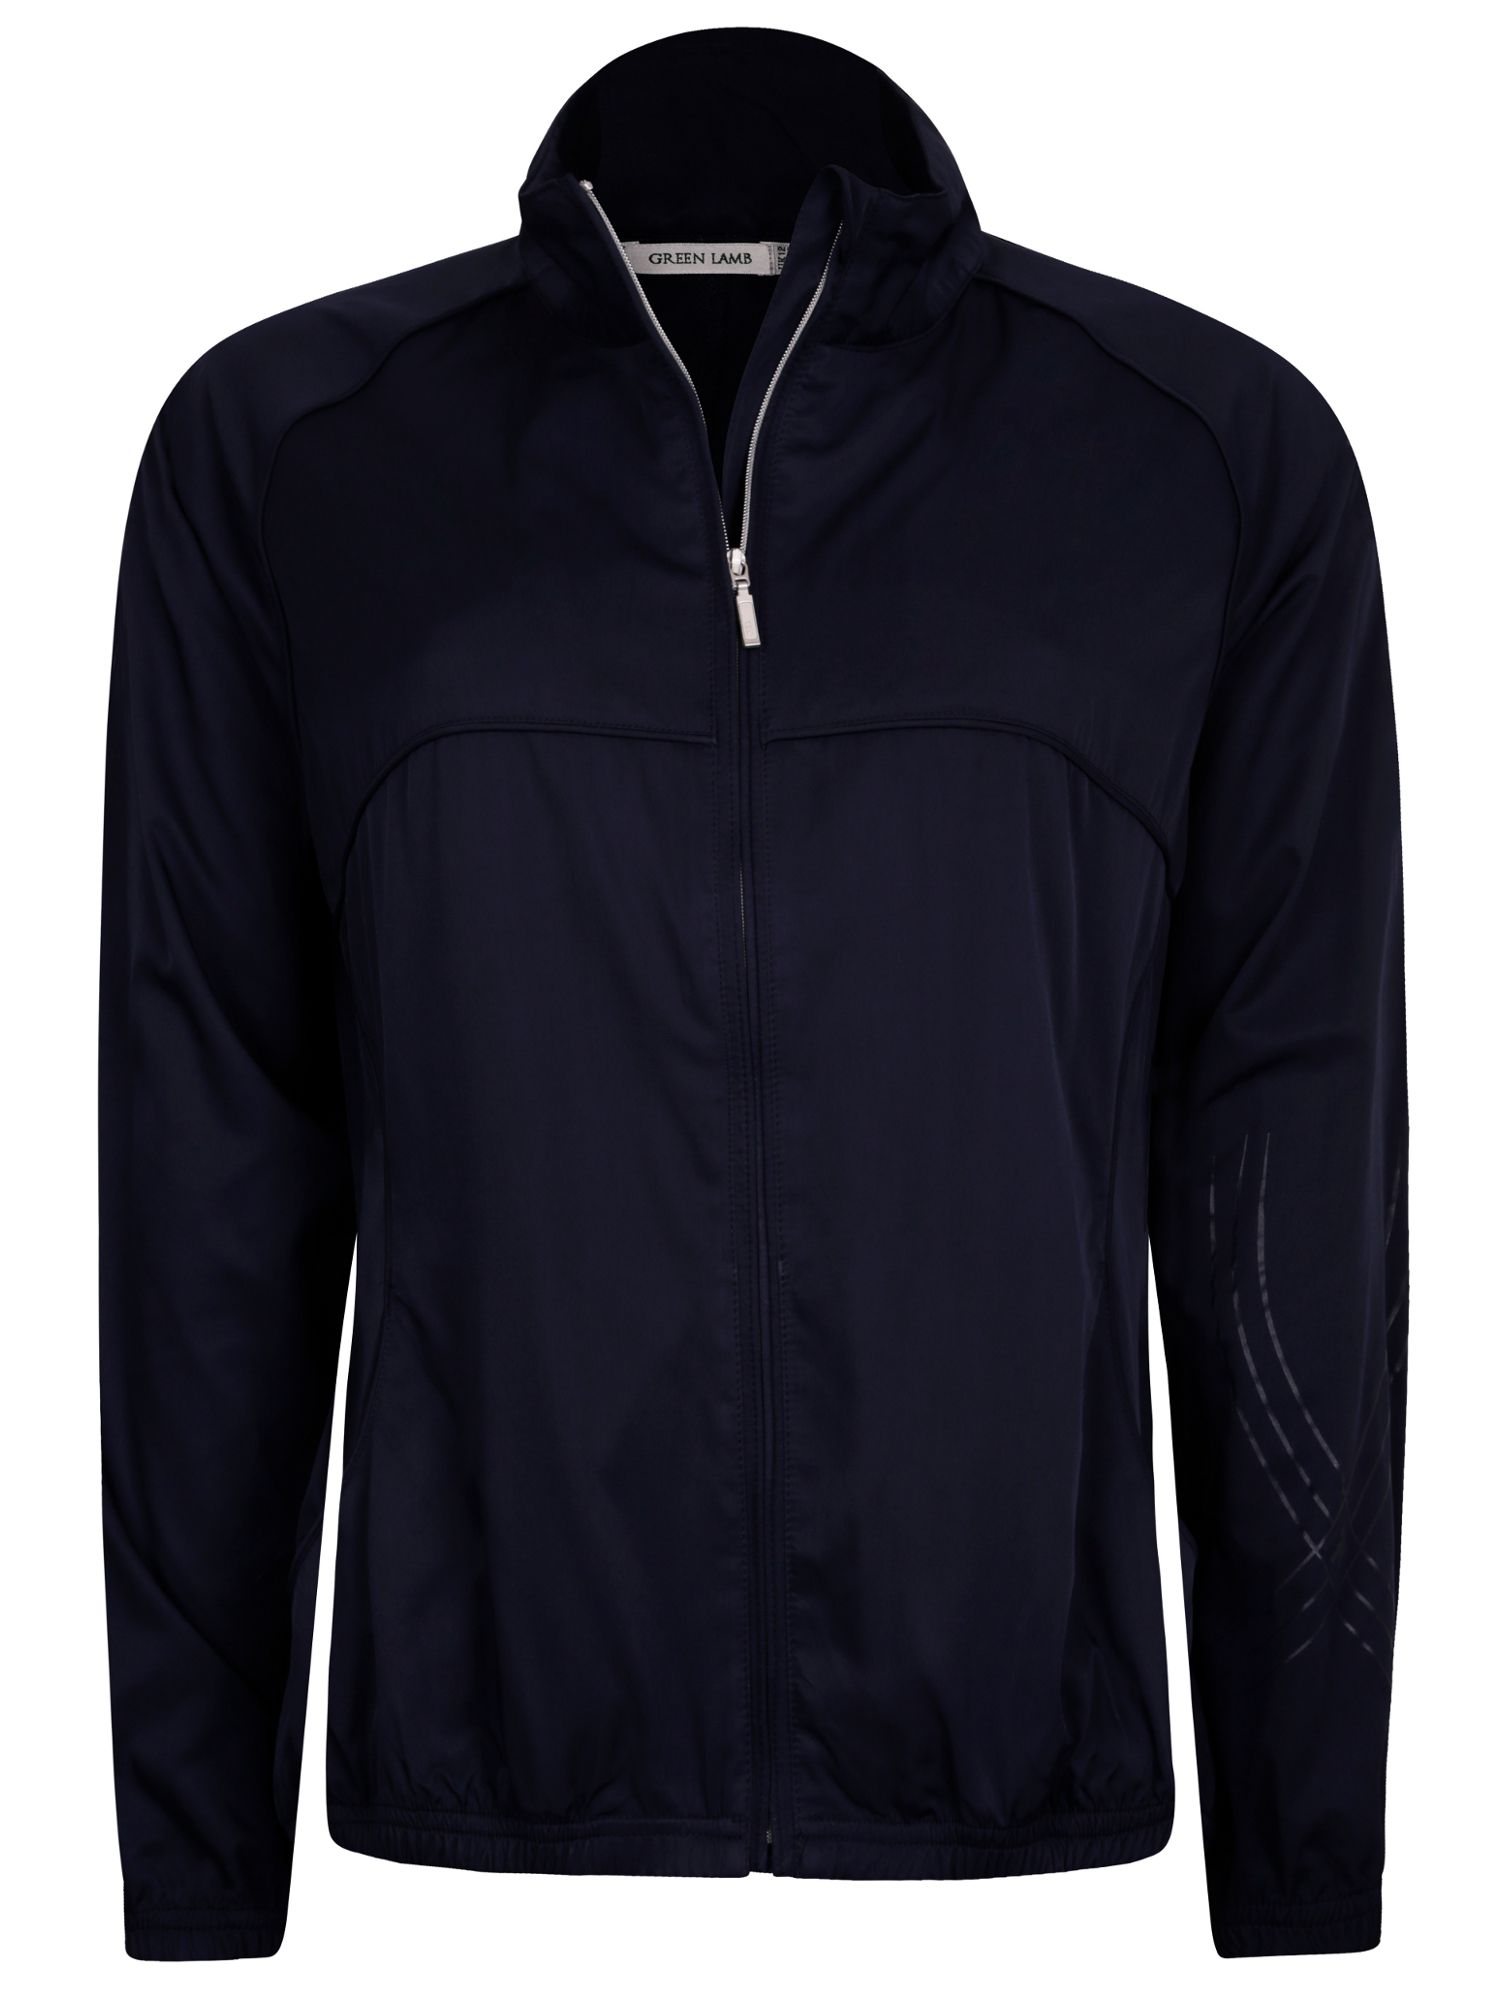 Jenny lightweight performance jacket